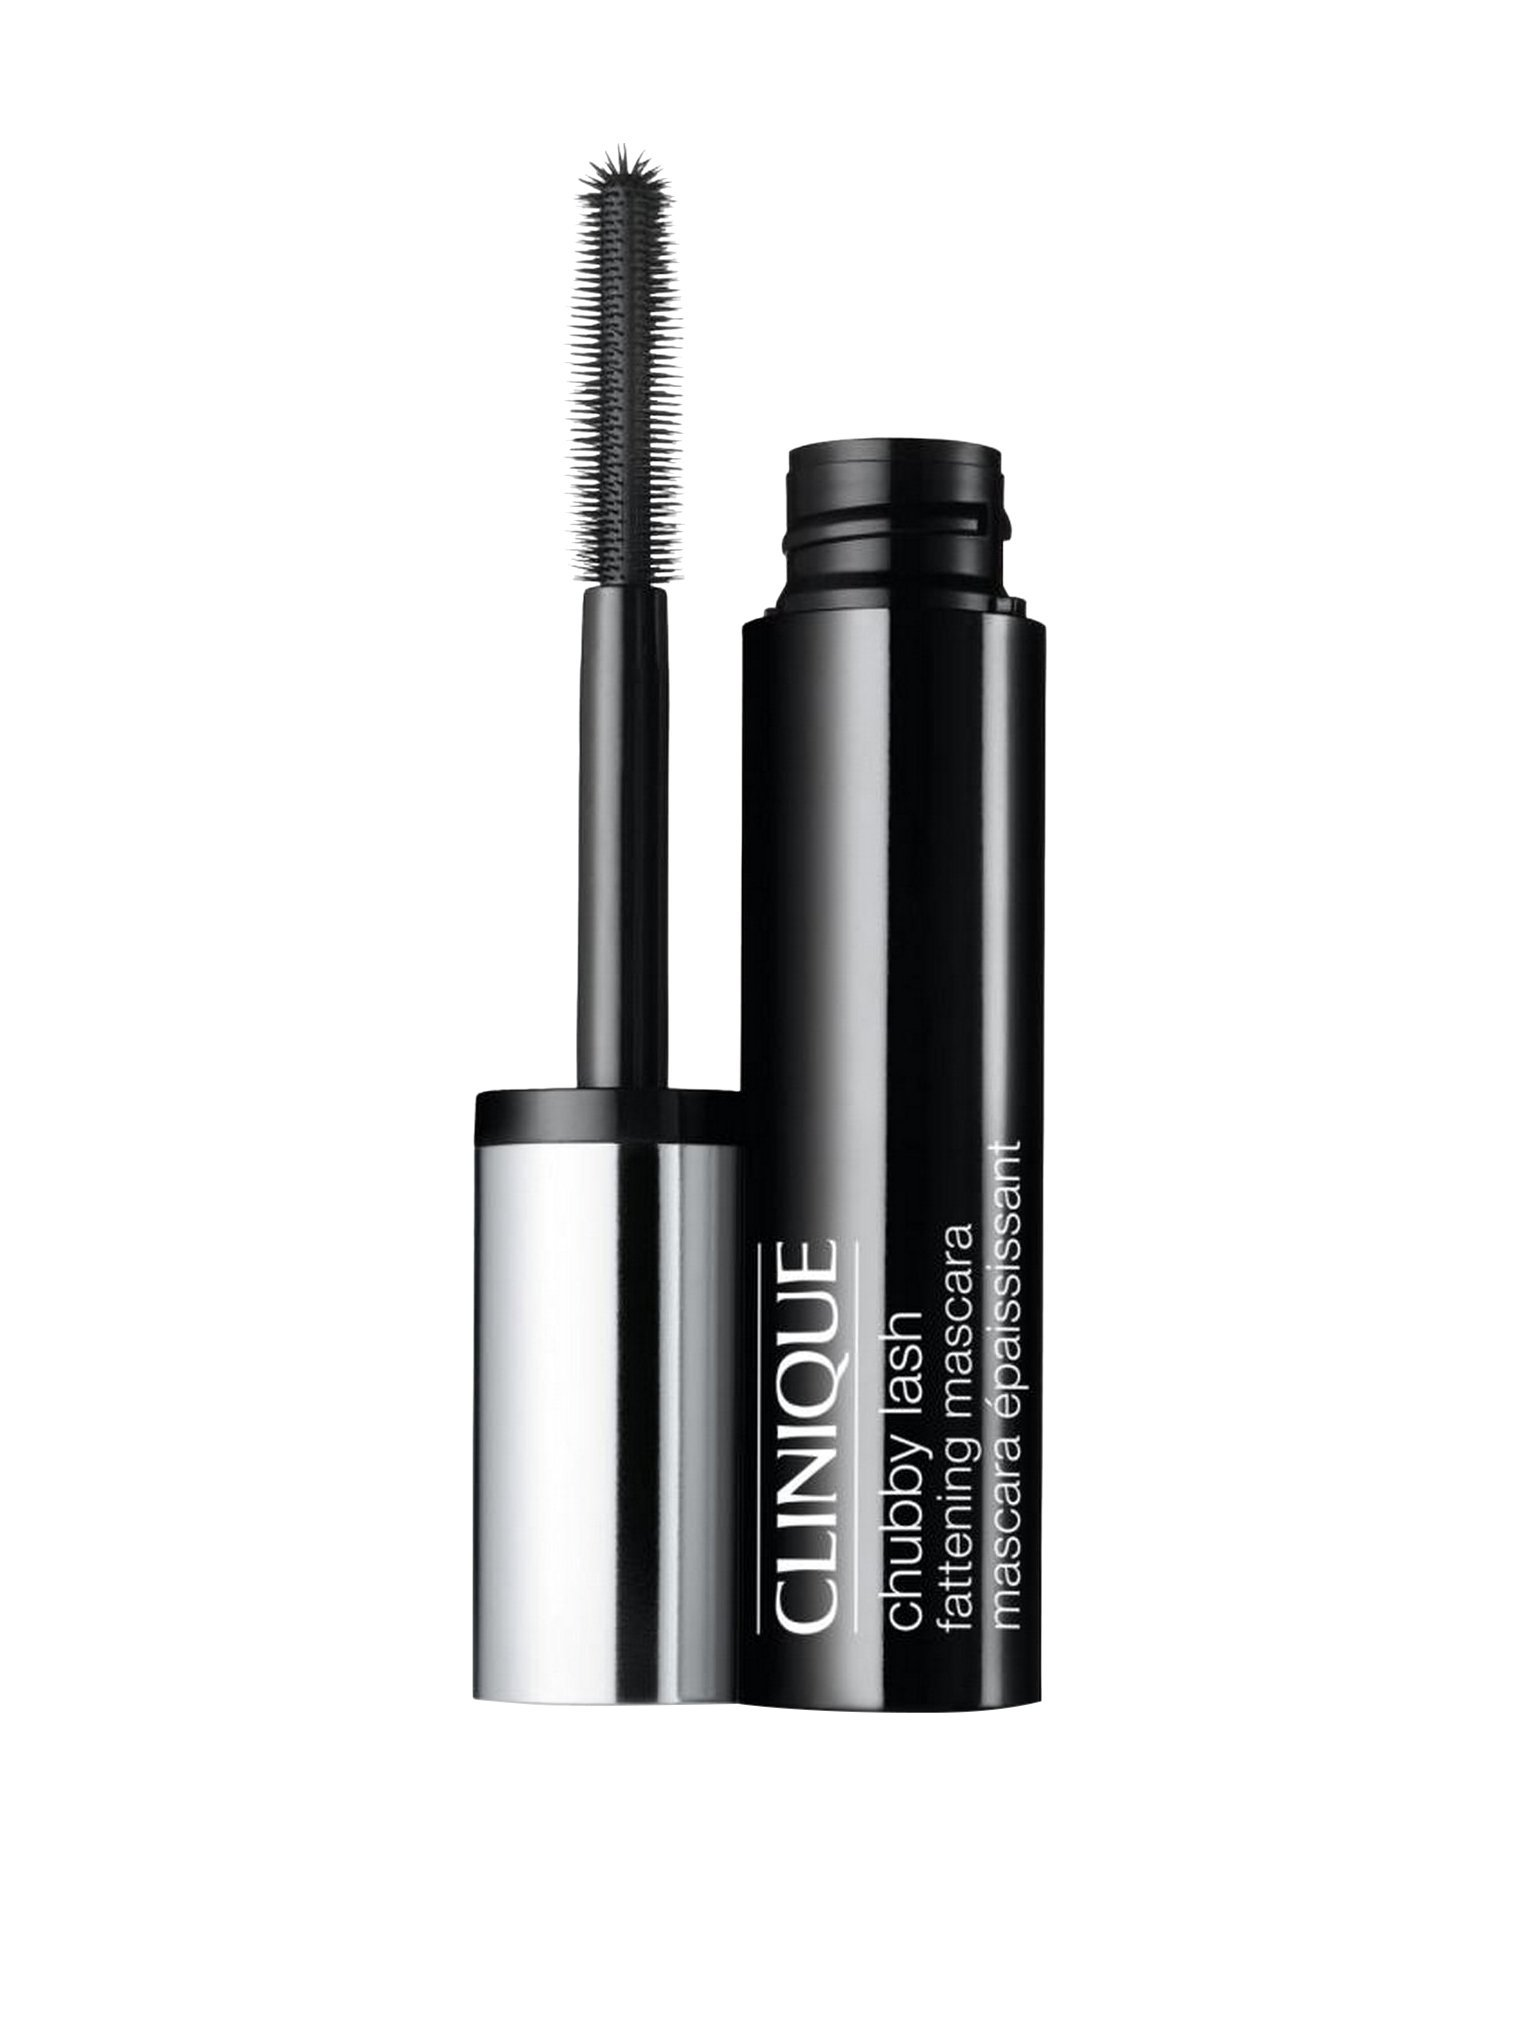 Clinique Women's Chubby Lash Fattening Mascara, 01 Jumbo Jet, 0.3 Ounce by Clinique (Image #1)